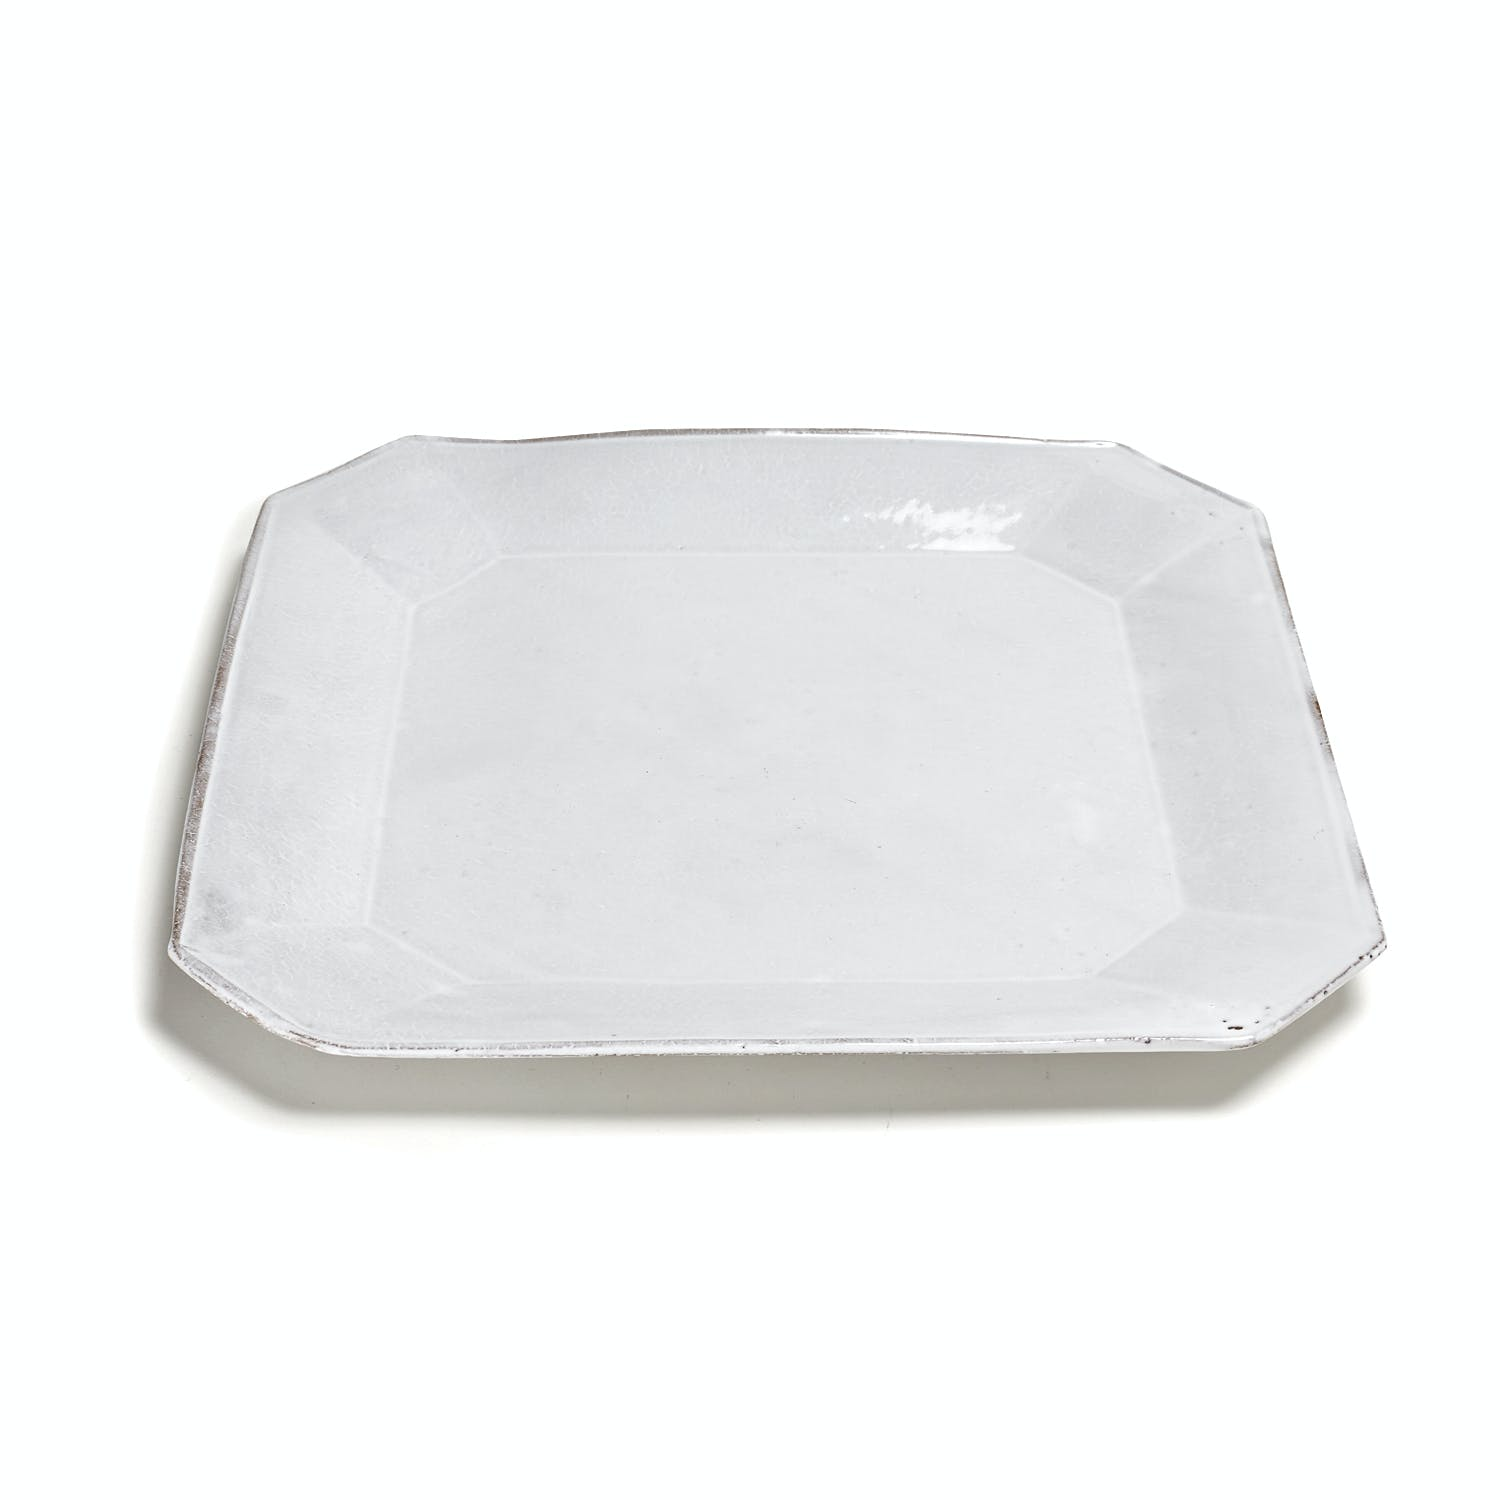 Astier de Villatte Revolution Square Server